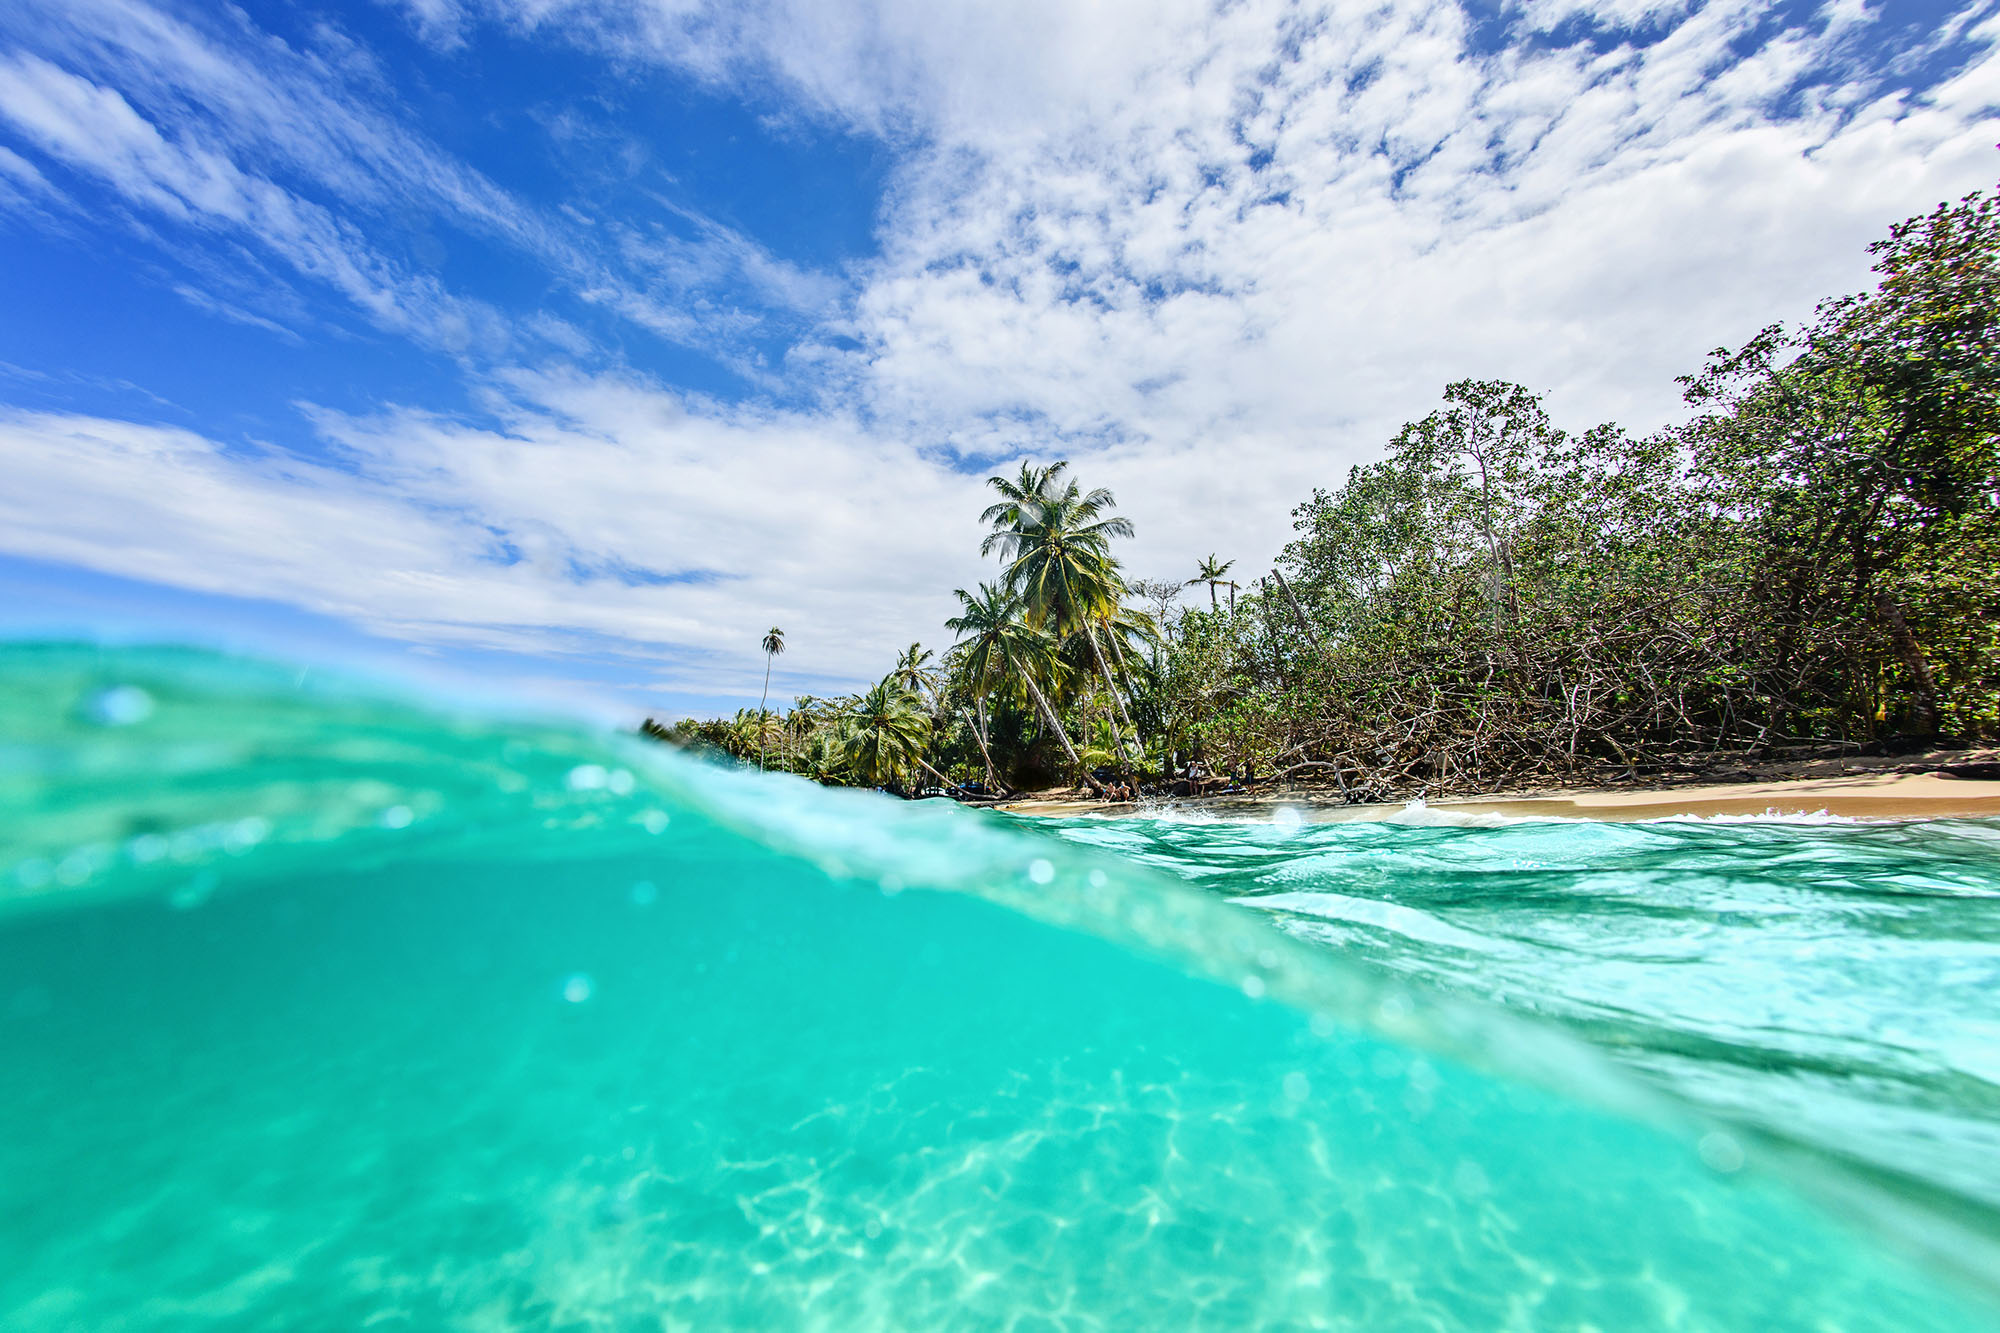 Over under underwater photo with palm trees and sky in the background